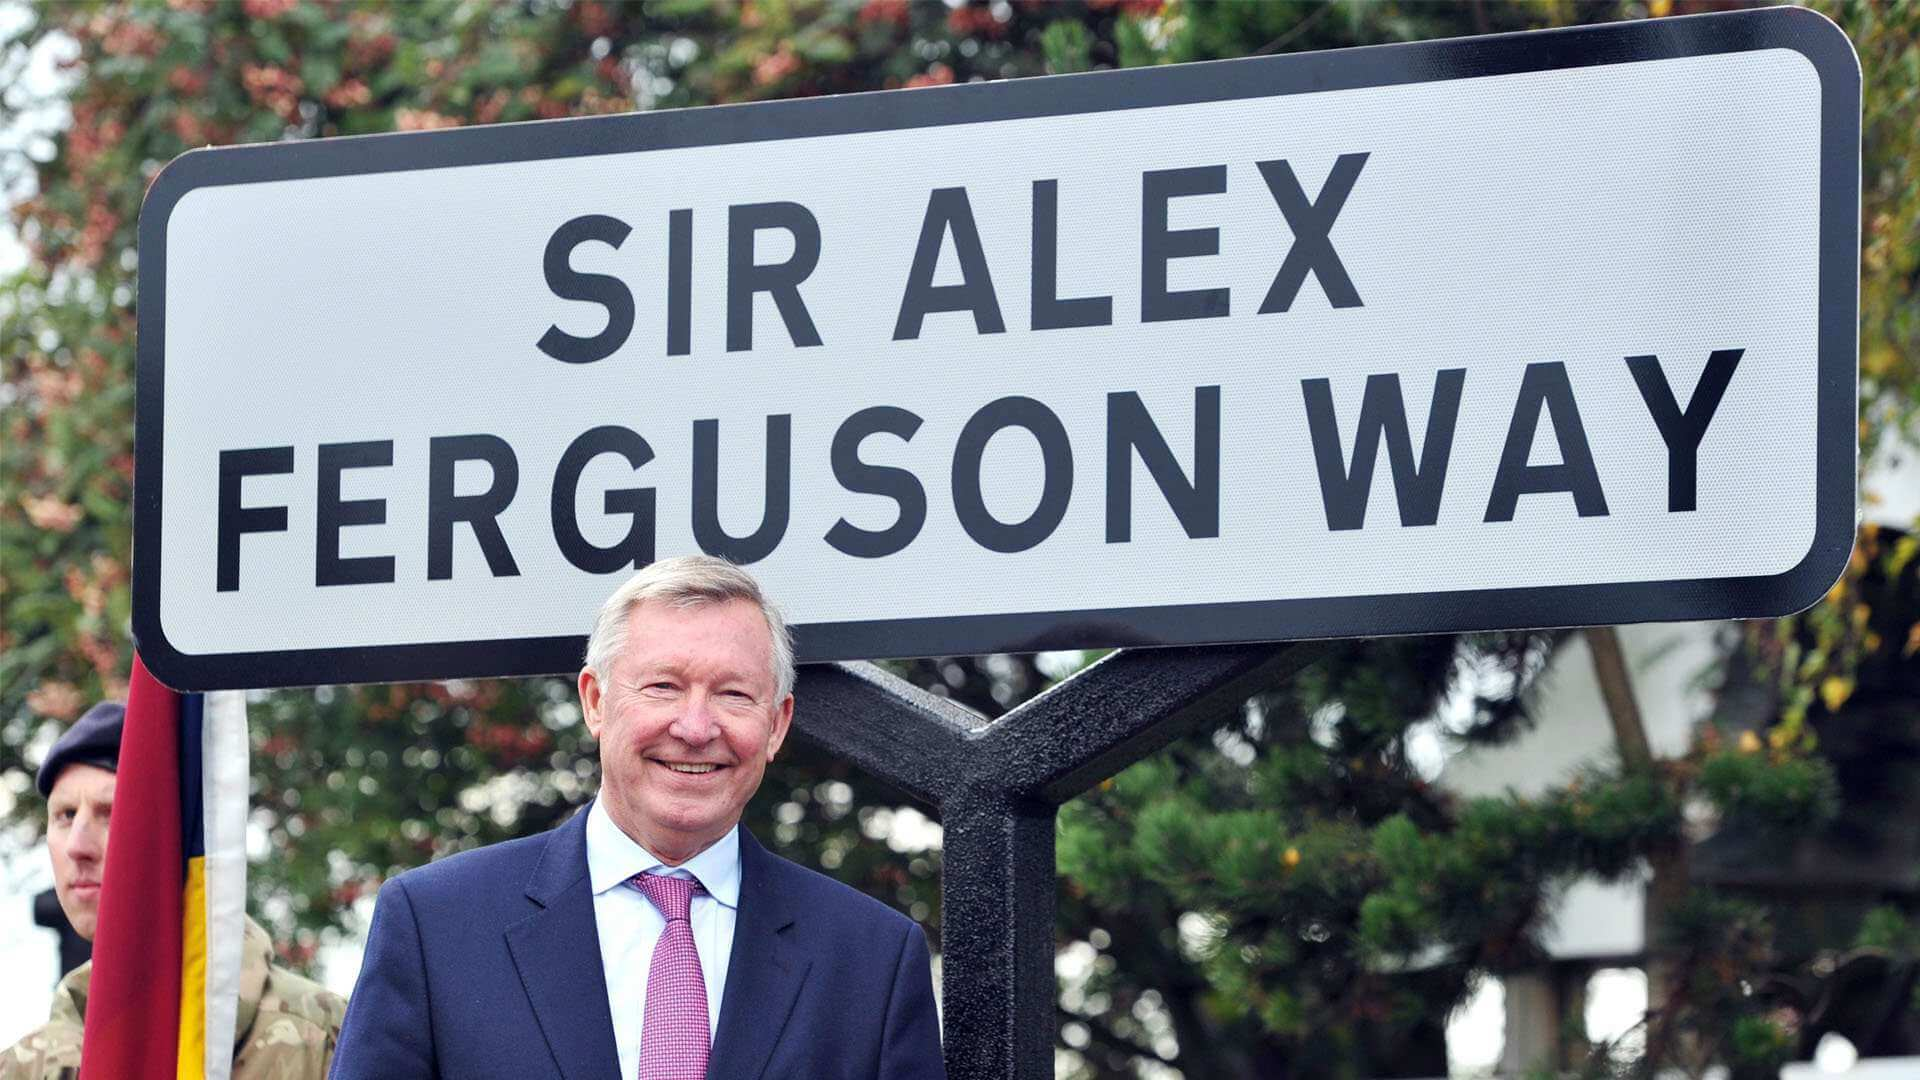 Sir Alex Ferguson Way